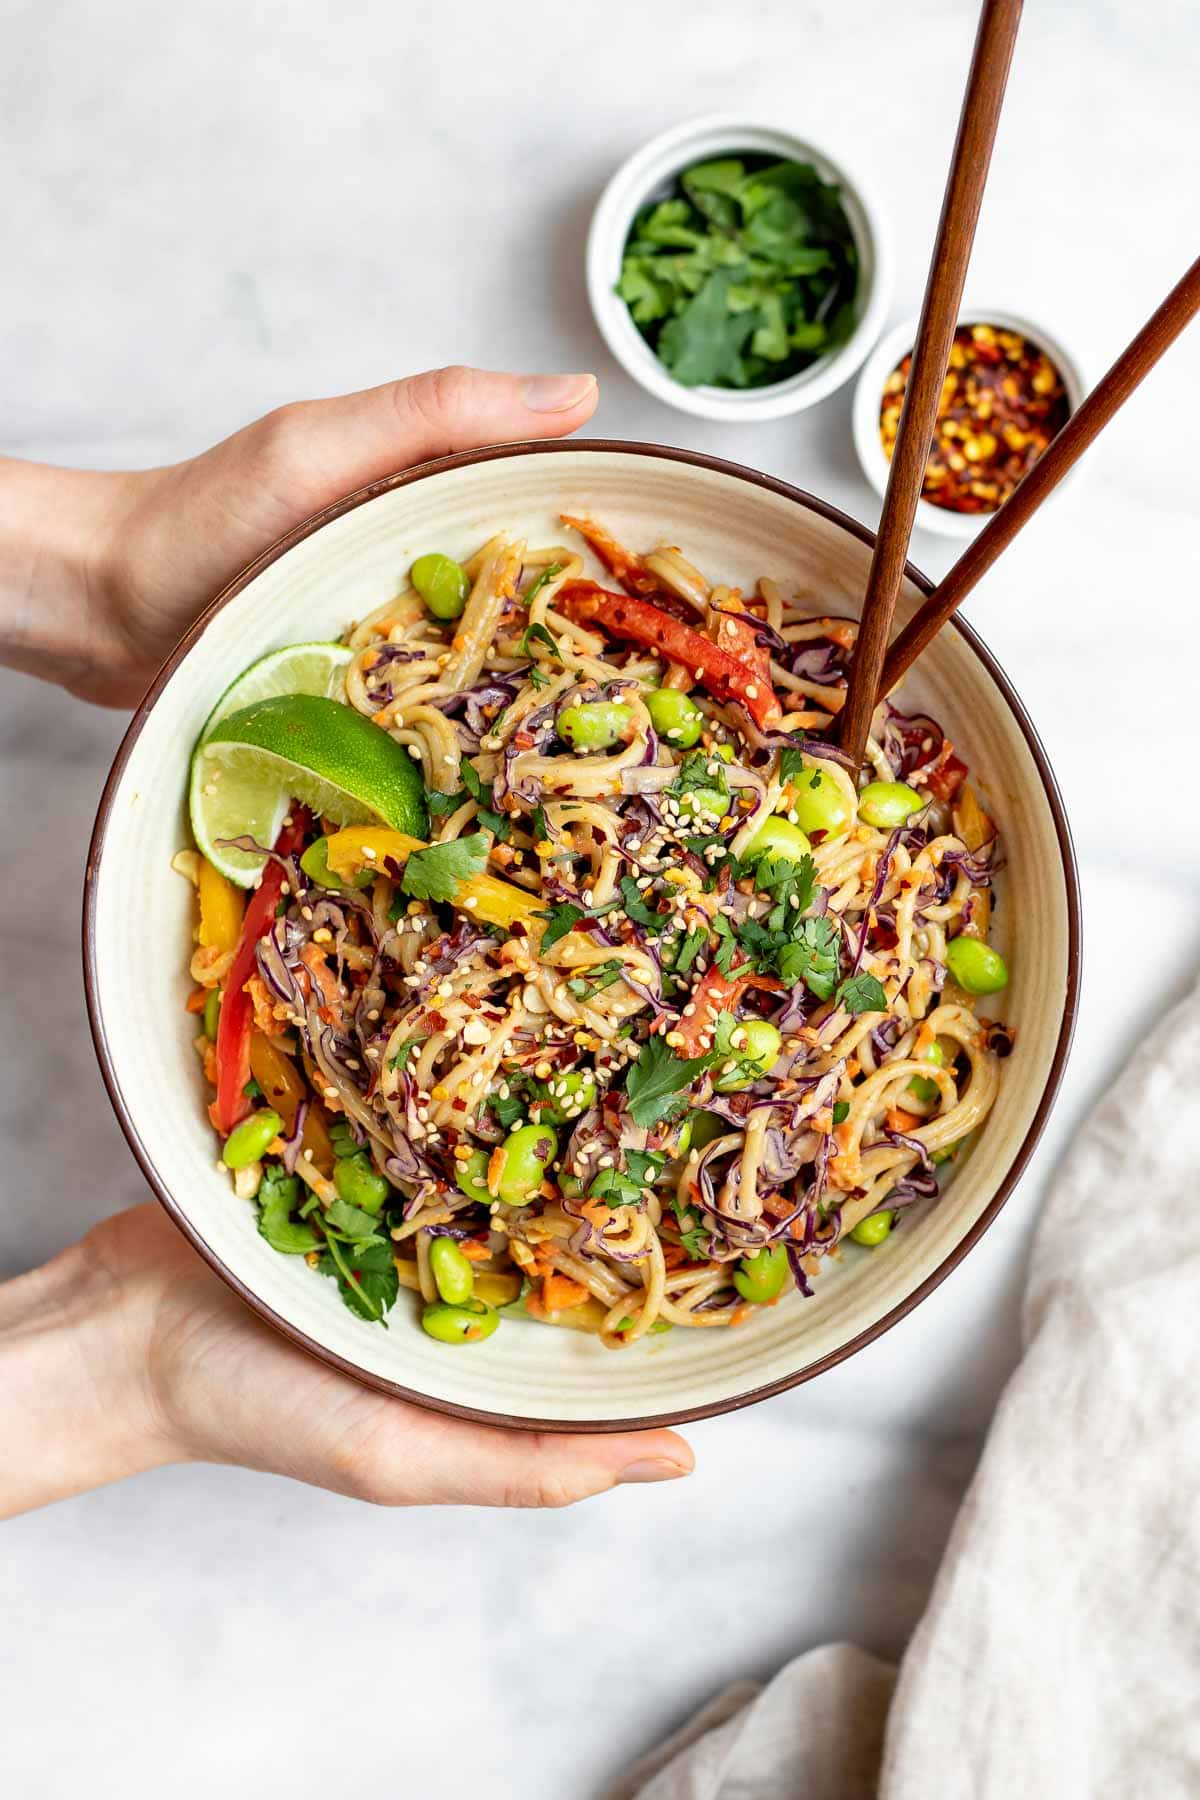 Two hands holding the thai noodle salad with chopsticks on the side.